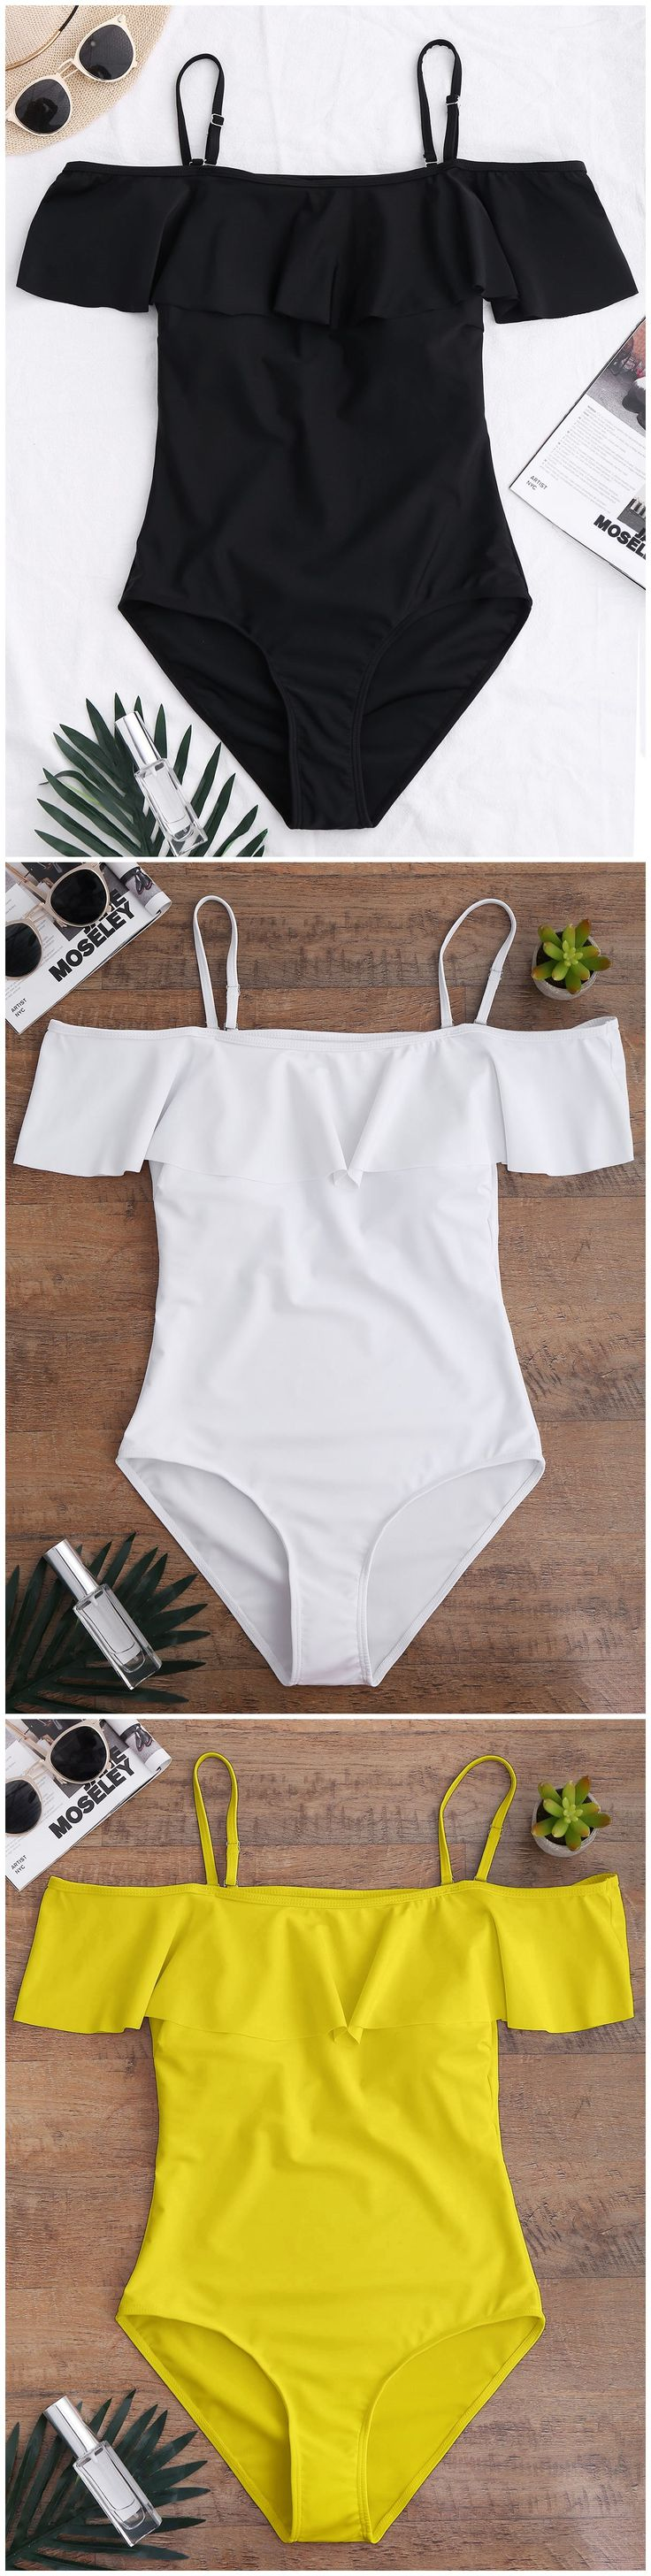 Up to 80% OFF! Off The Shoulder Flounced One-Piece Swimwear. #Zaful #Swimwear #Bikinis zaful,zaful outfits,zaful dresses,spring outfits,summer dresses,Valentine's Day,valentines day ideas,cute,casual,fashion,style,bathing suit,swimsuits,one pieces,swimwear,bikini set,bikini,one piece swimwear,beach outfit,swimwear cover ups,high waisted swimsuit,tankini,high cut one piece swimsuit,high waisted swimsuit,swimwear modest,swimsuit modest,cover ups @zafulbikini Extra 10% OFF Code:zafulbikini